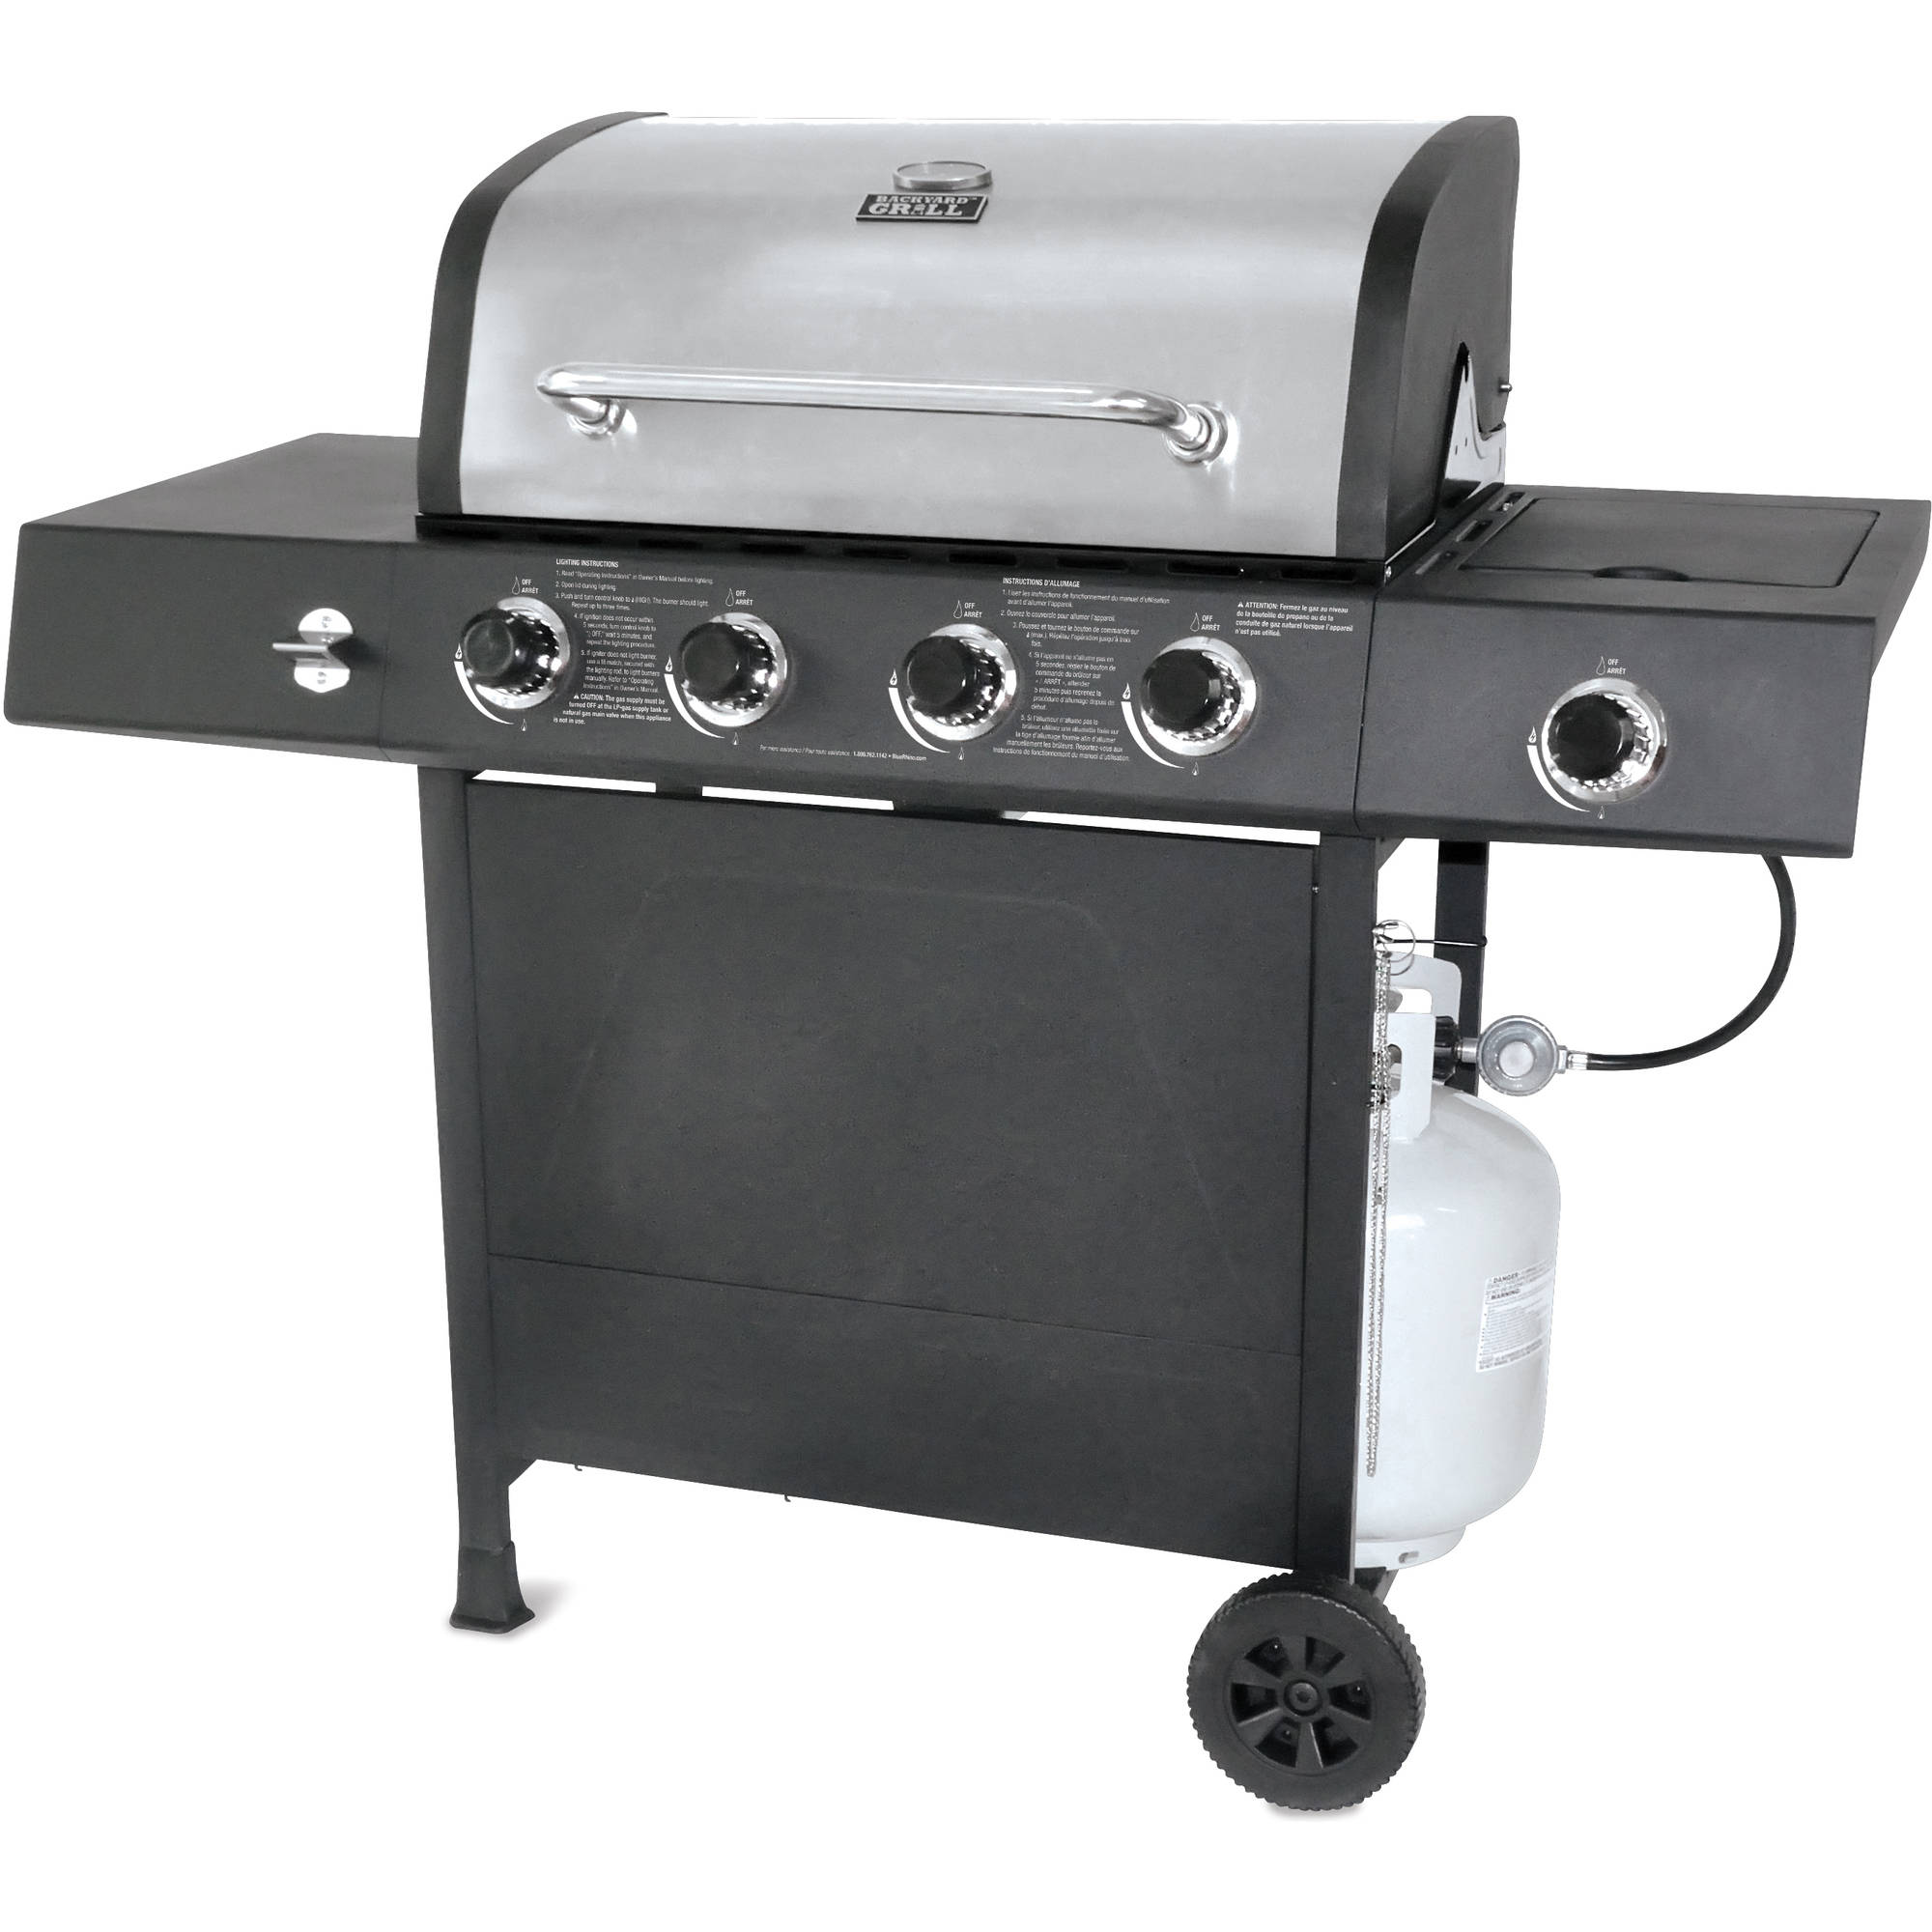 Backyard Grill 4-Burner Gas Grill with Side Burner